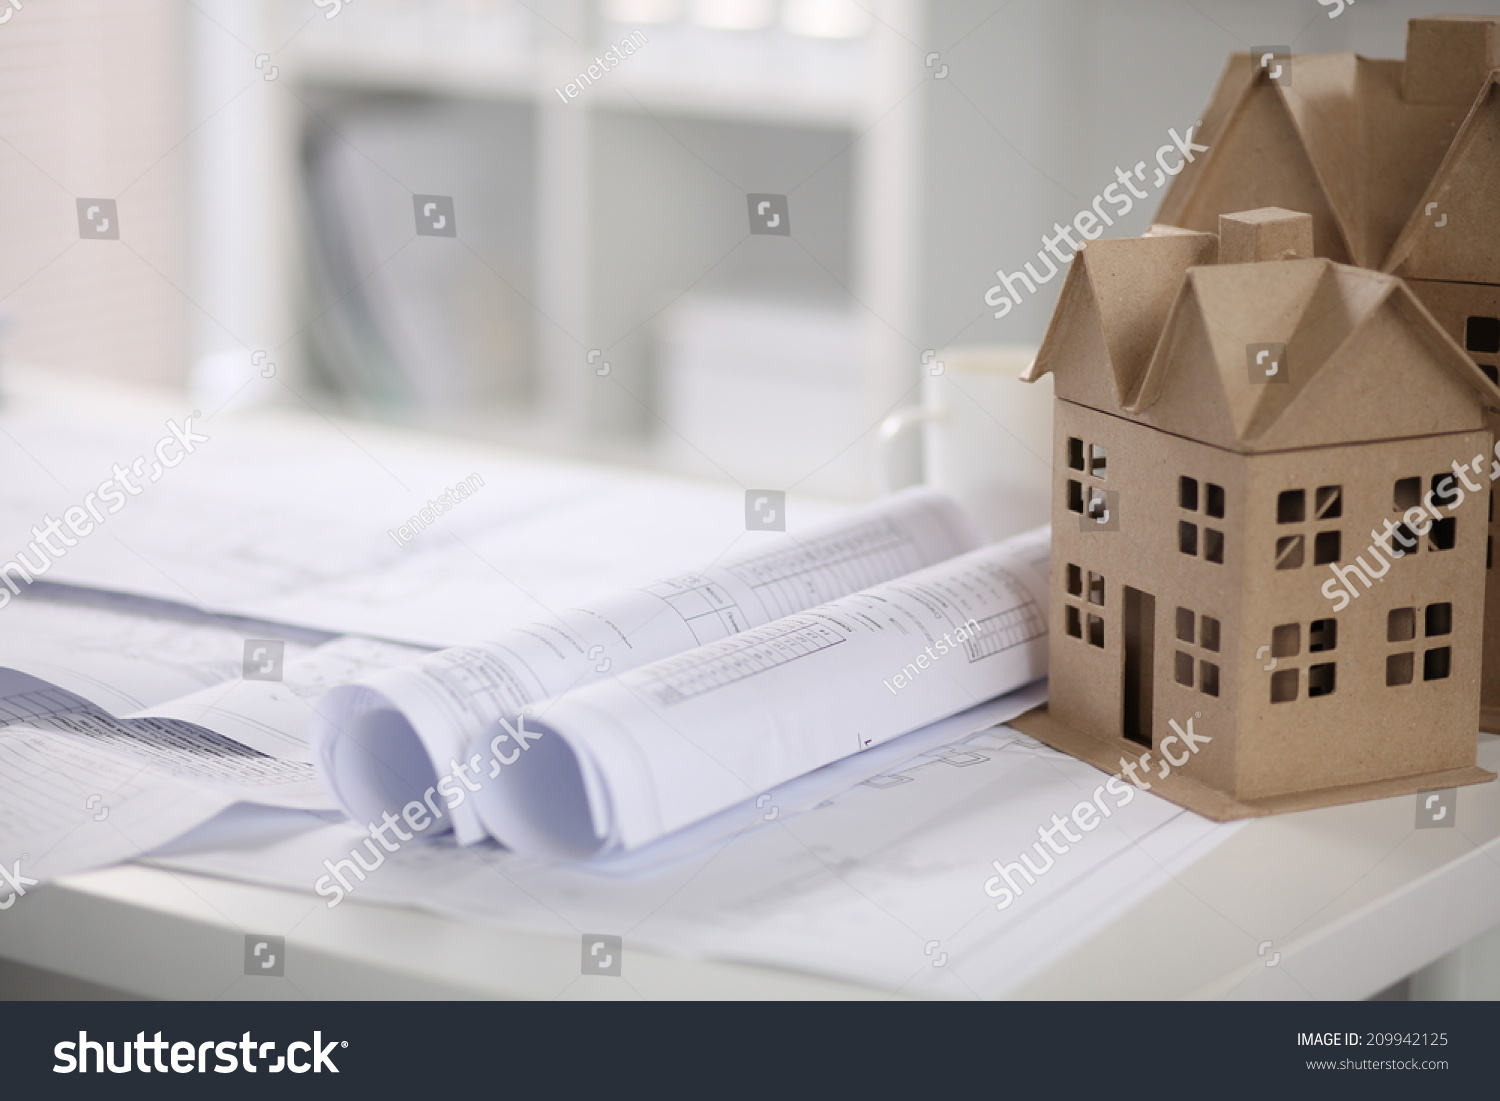 Outstanding Image Of New Model House On Architecture Blueprint Plan At Desk Largest Home Design Picture Inspirations Pitcheantrous